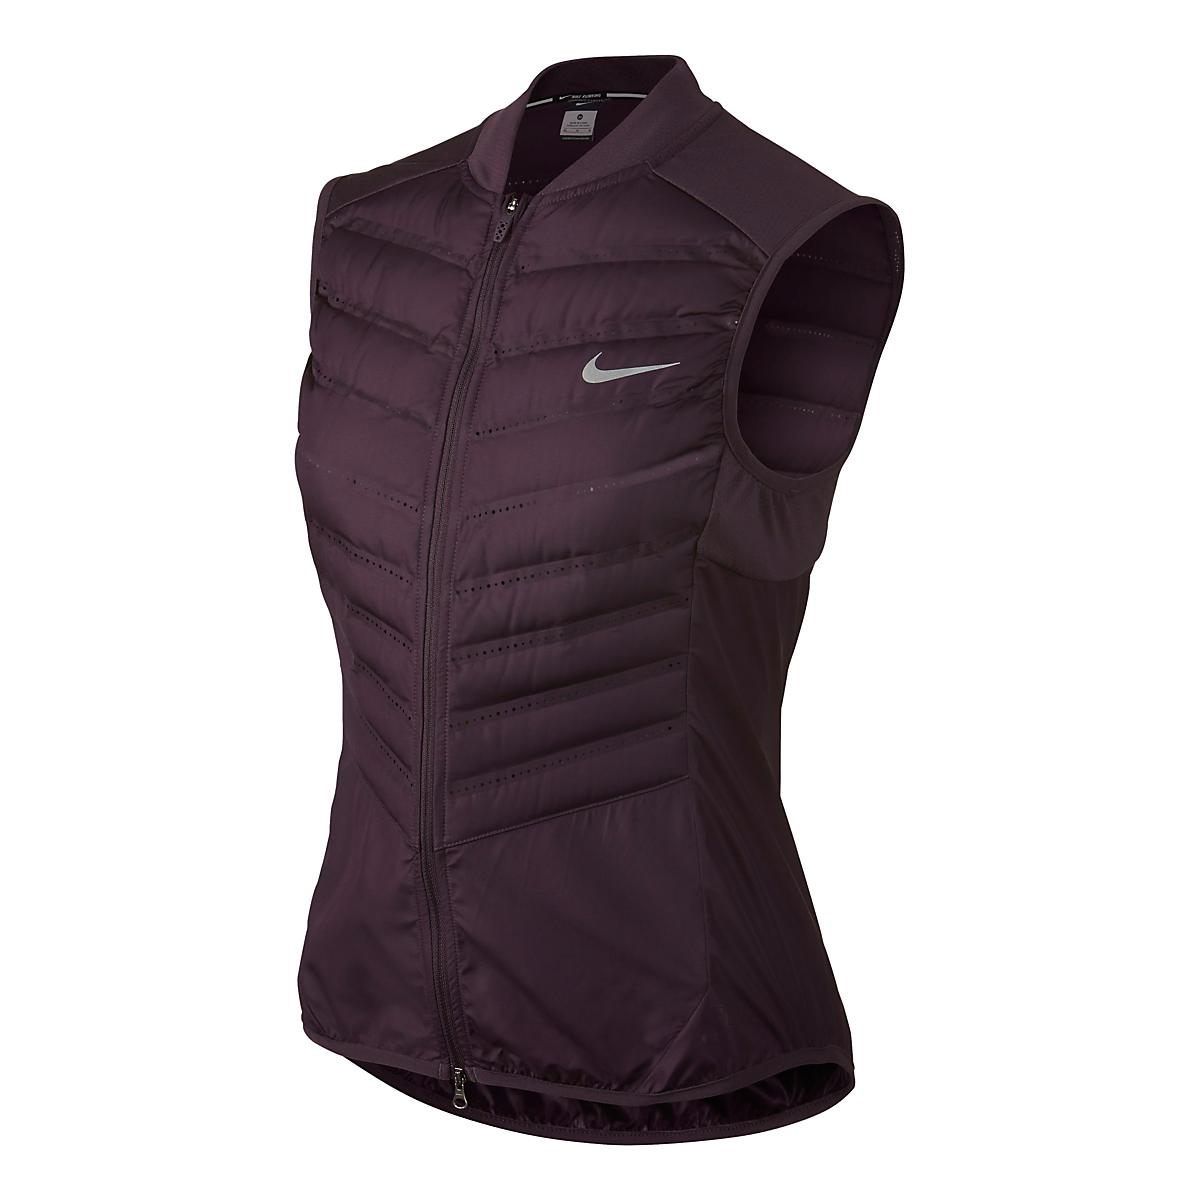 Womens Nike Aeroloft 800 Running Vest at Road Runner Sports 6973b4446